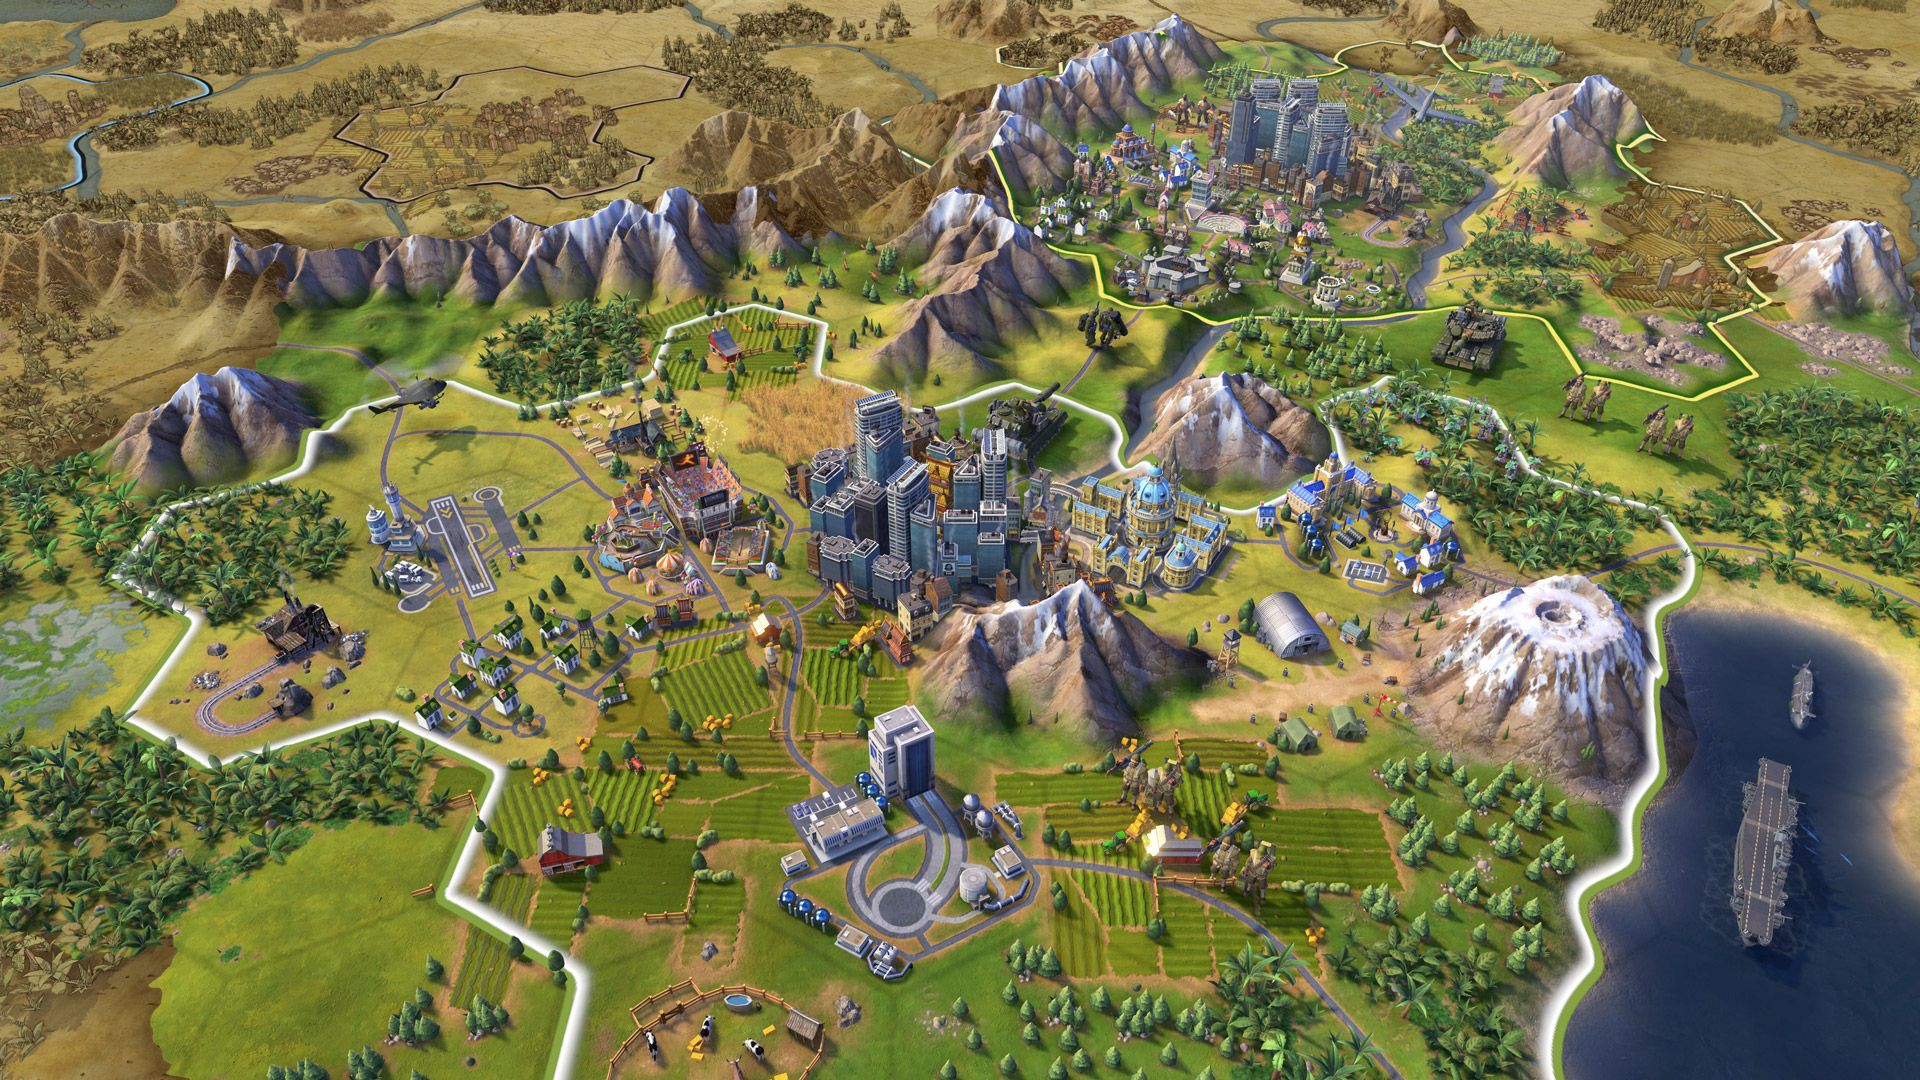 [Civilization VI](https://civilization.com/en-GB/)